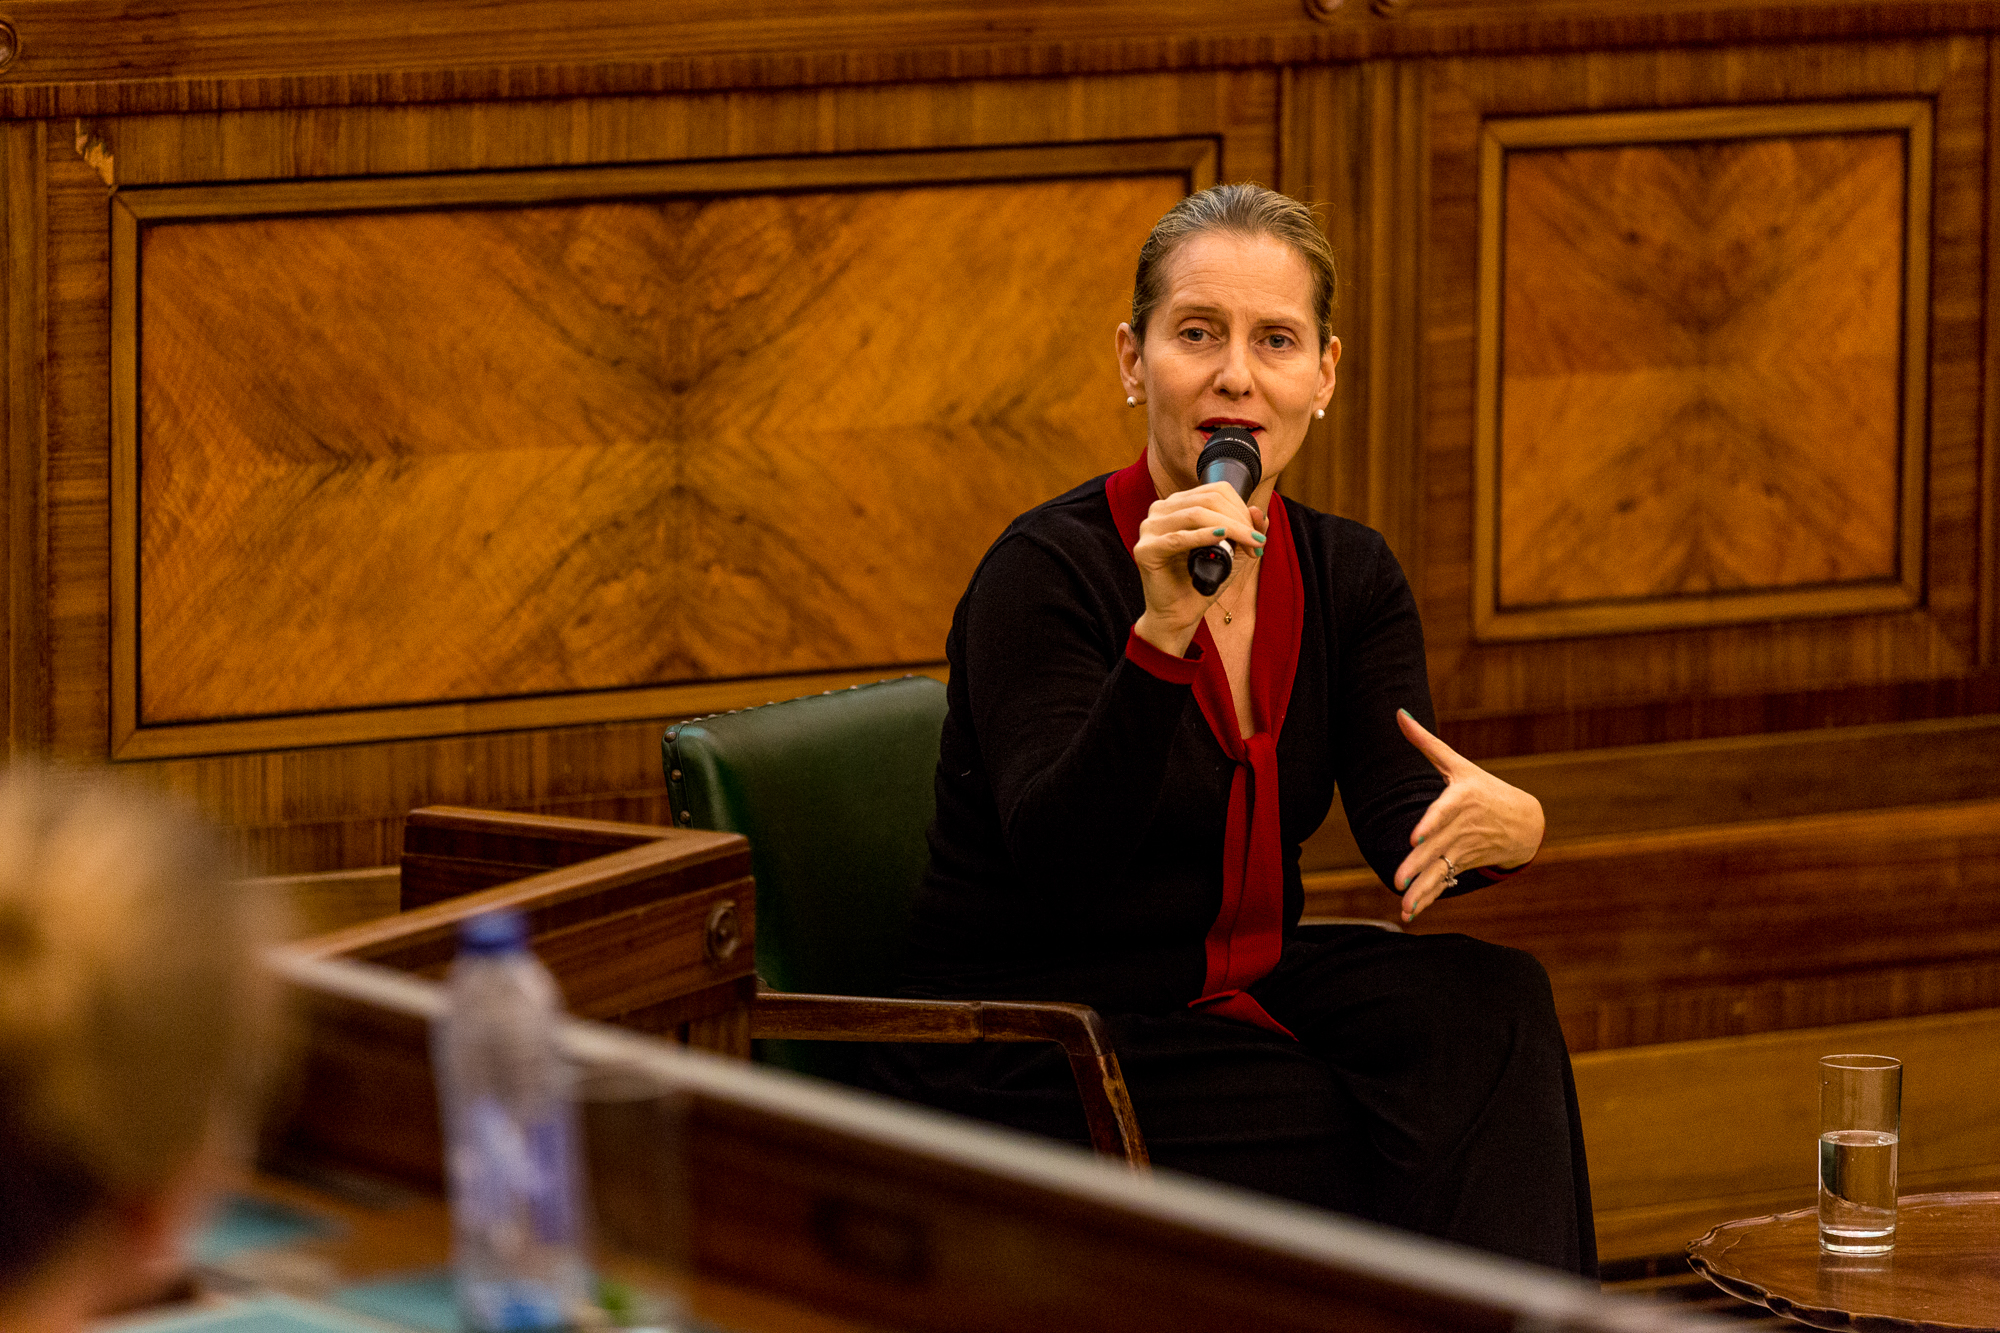 EVENTS: RIPOSTE PRESENTS... PAOLA ANTONELLI    At the end of February we were incredibly honoured and happy to welcome Paola Antonelli, senior curator of architecture and design and MoMA and also head of their research and development department to speak at one of our Riposte Presents events.  Read more >